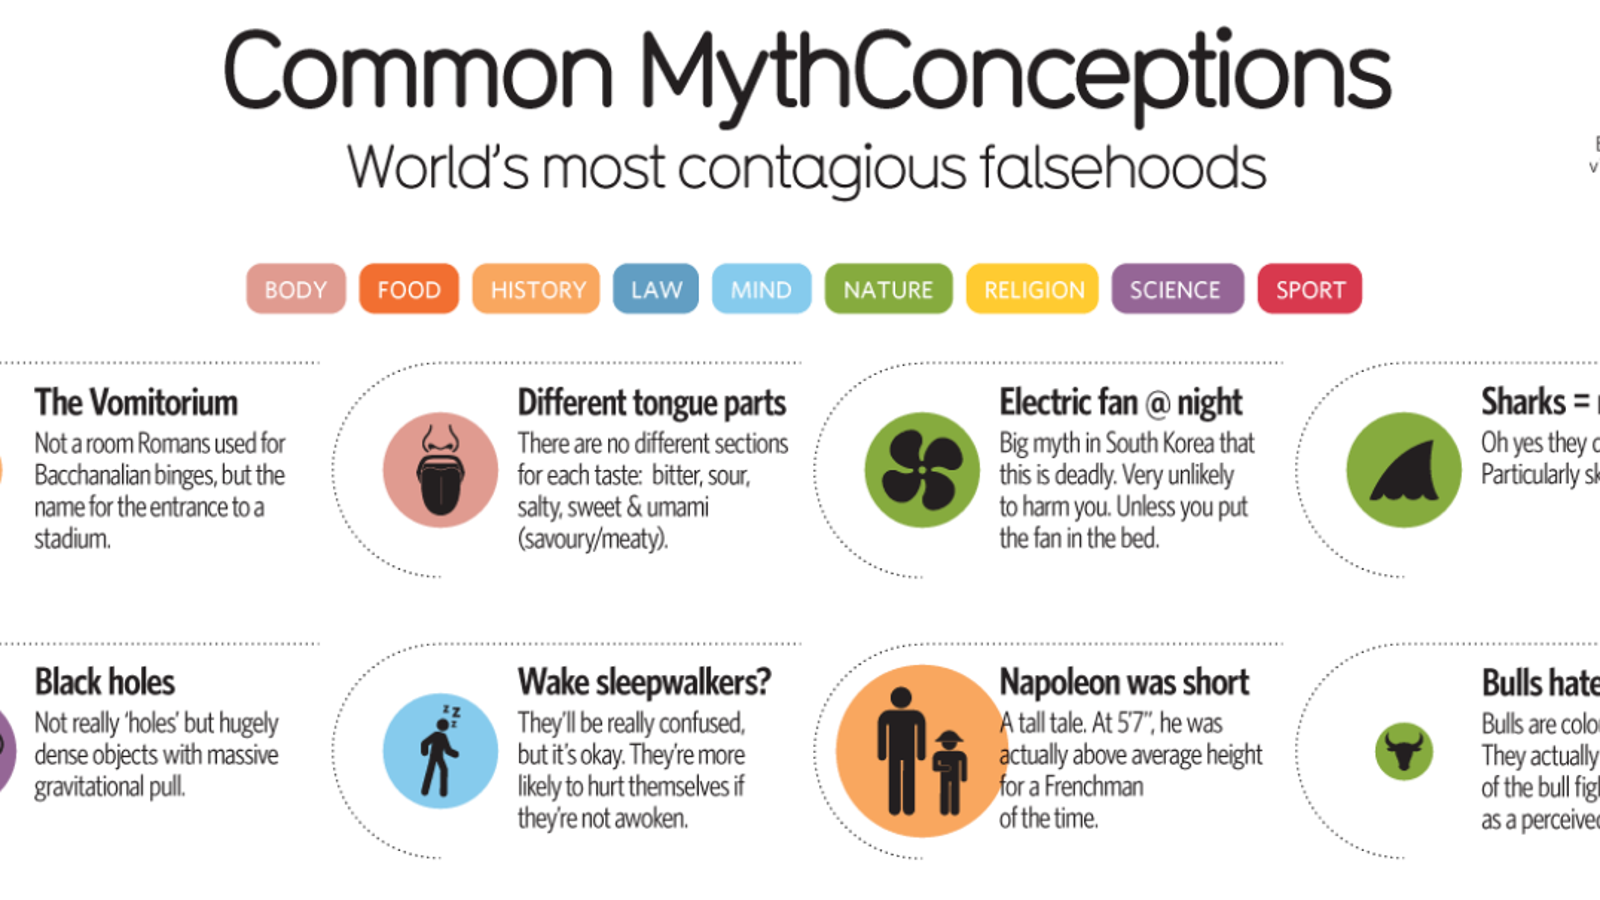 The most common historical misconceptions